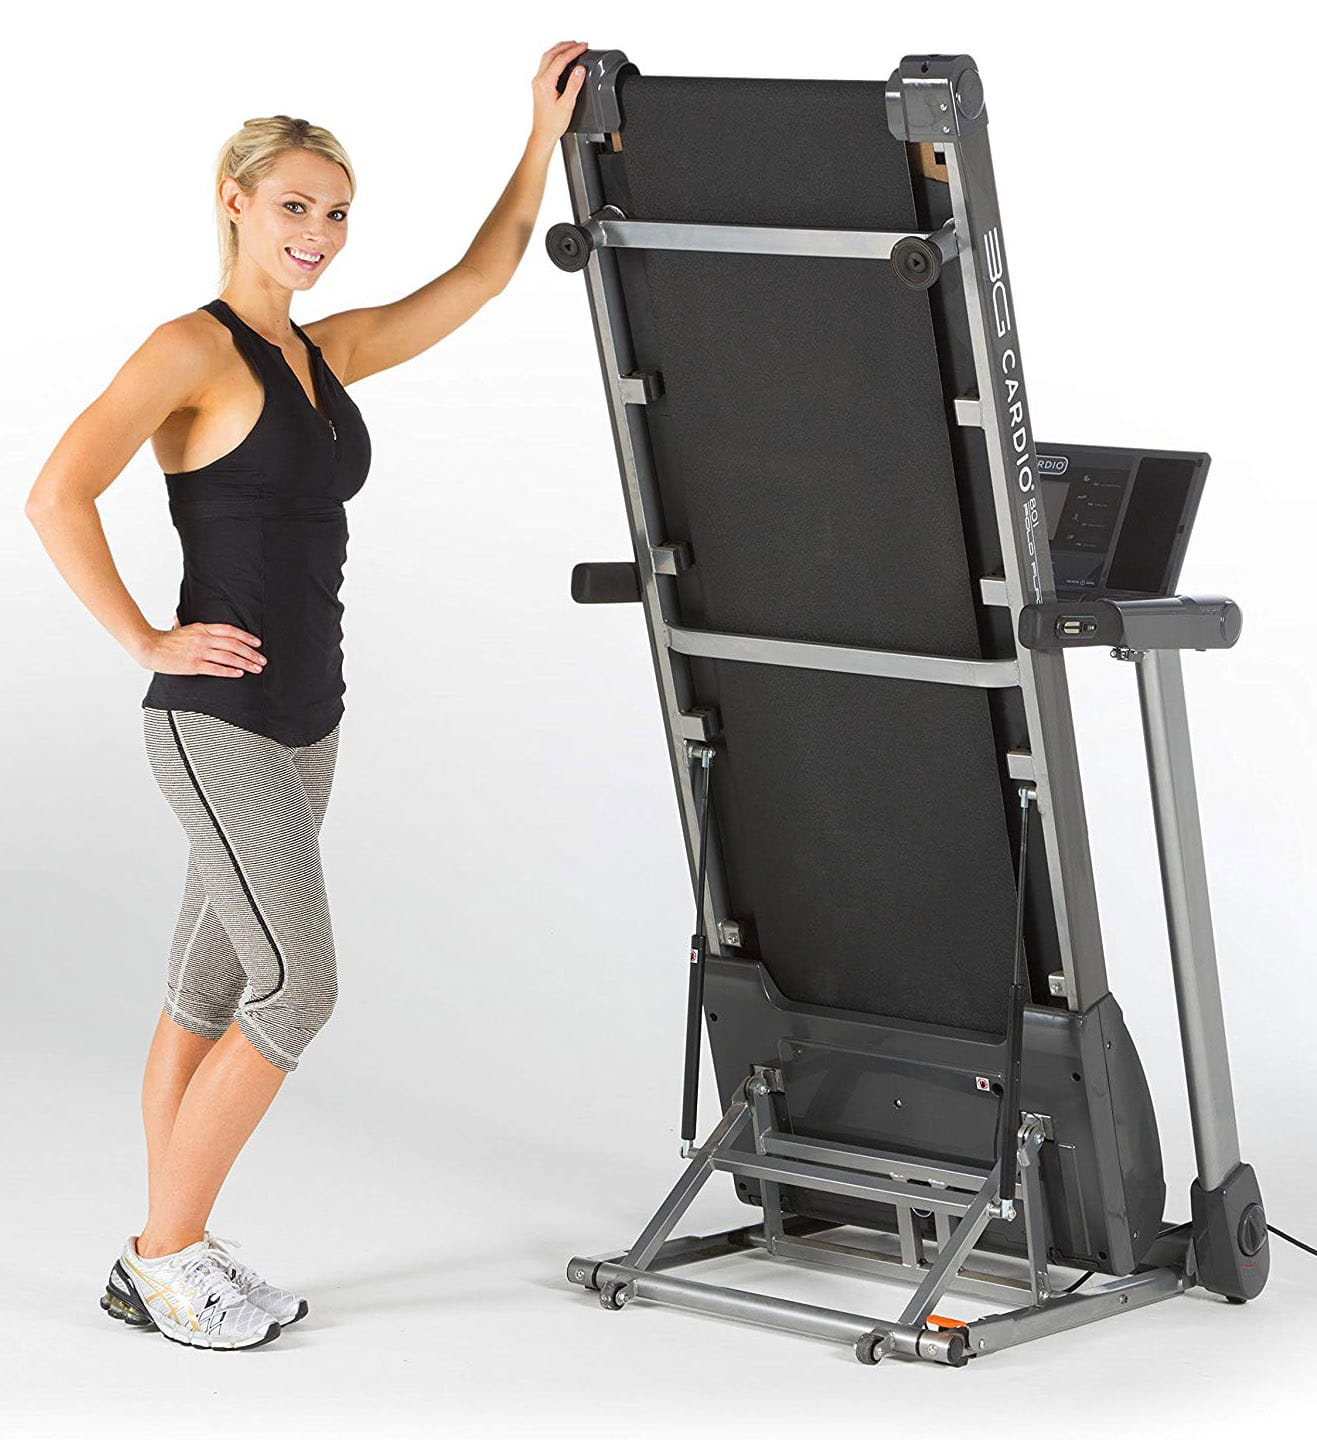 3G Cardio 80i Fold Flat Treadmill reviews